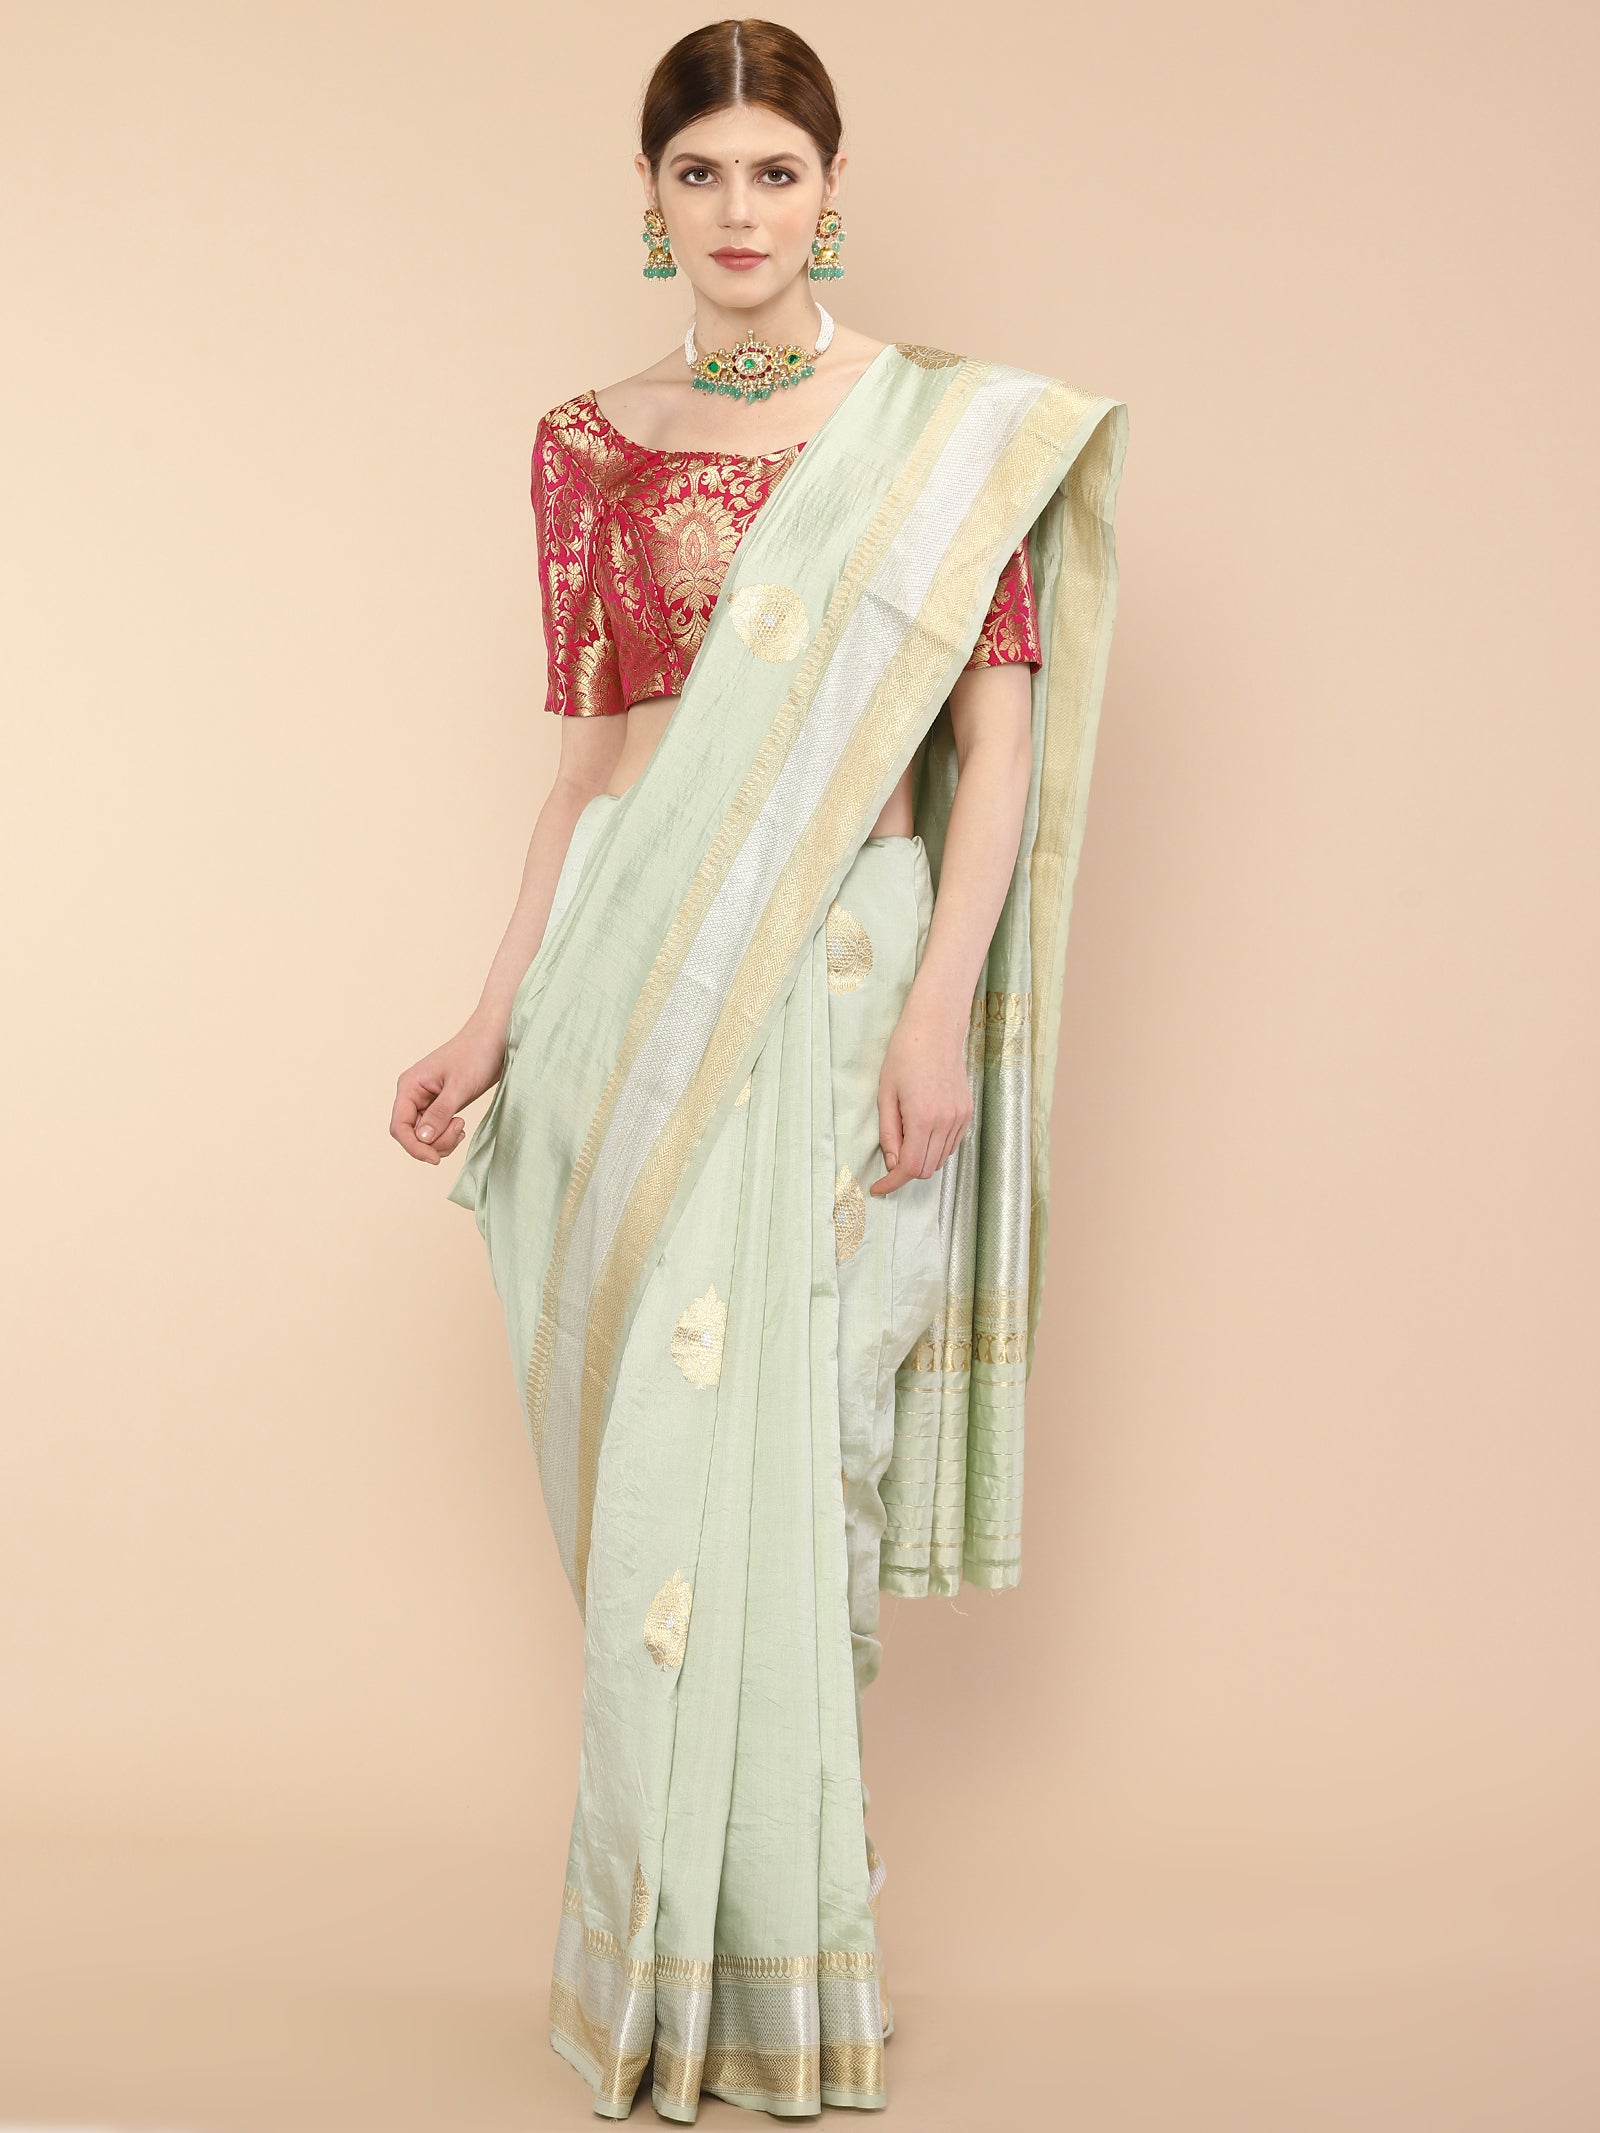 A pale blue pure silk banarasi saree is handwoven with leaf motifs and golden & silver zari borders.